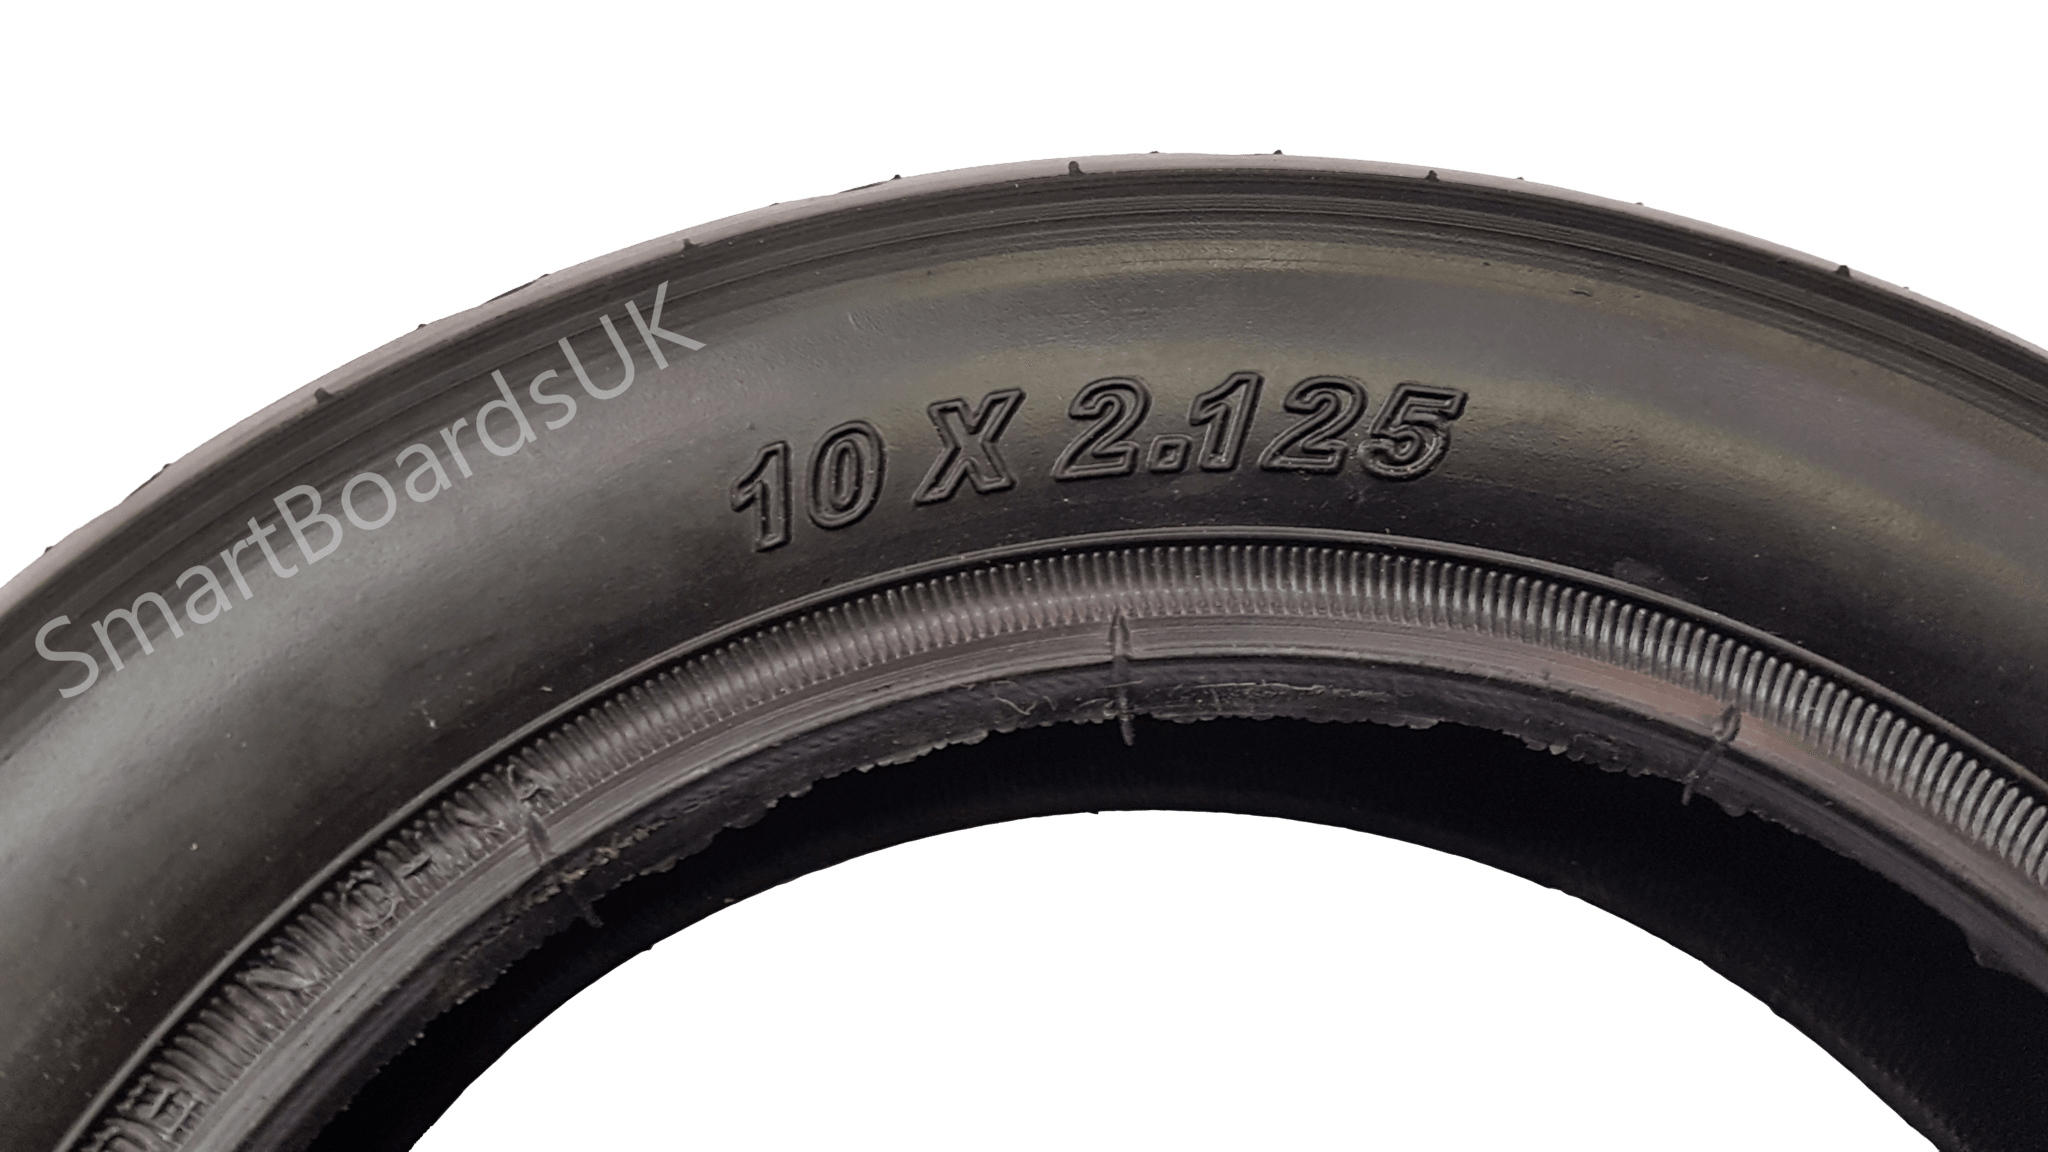 TYRE & INNER TUBE FOR 10 INCH HOVERBOARD (10